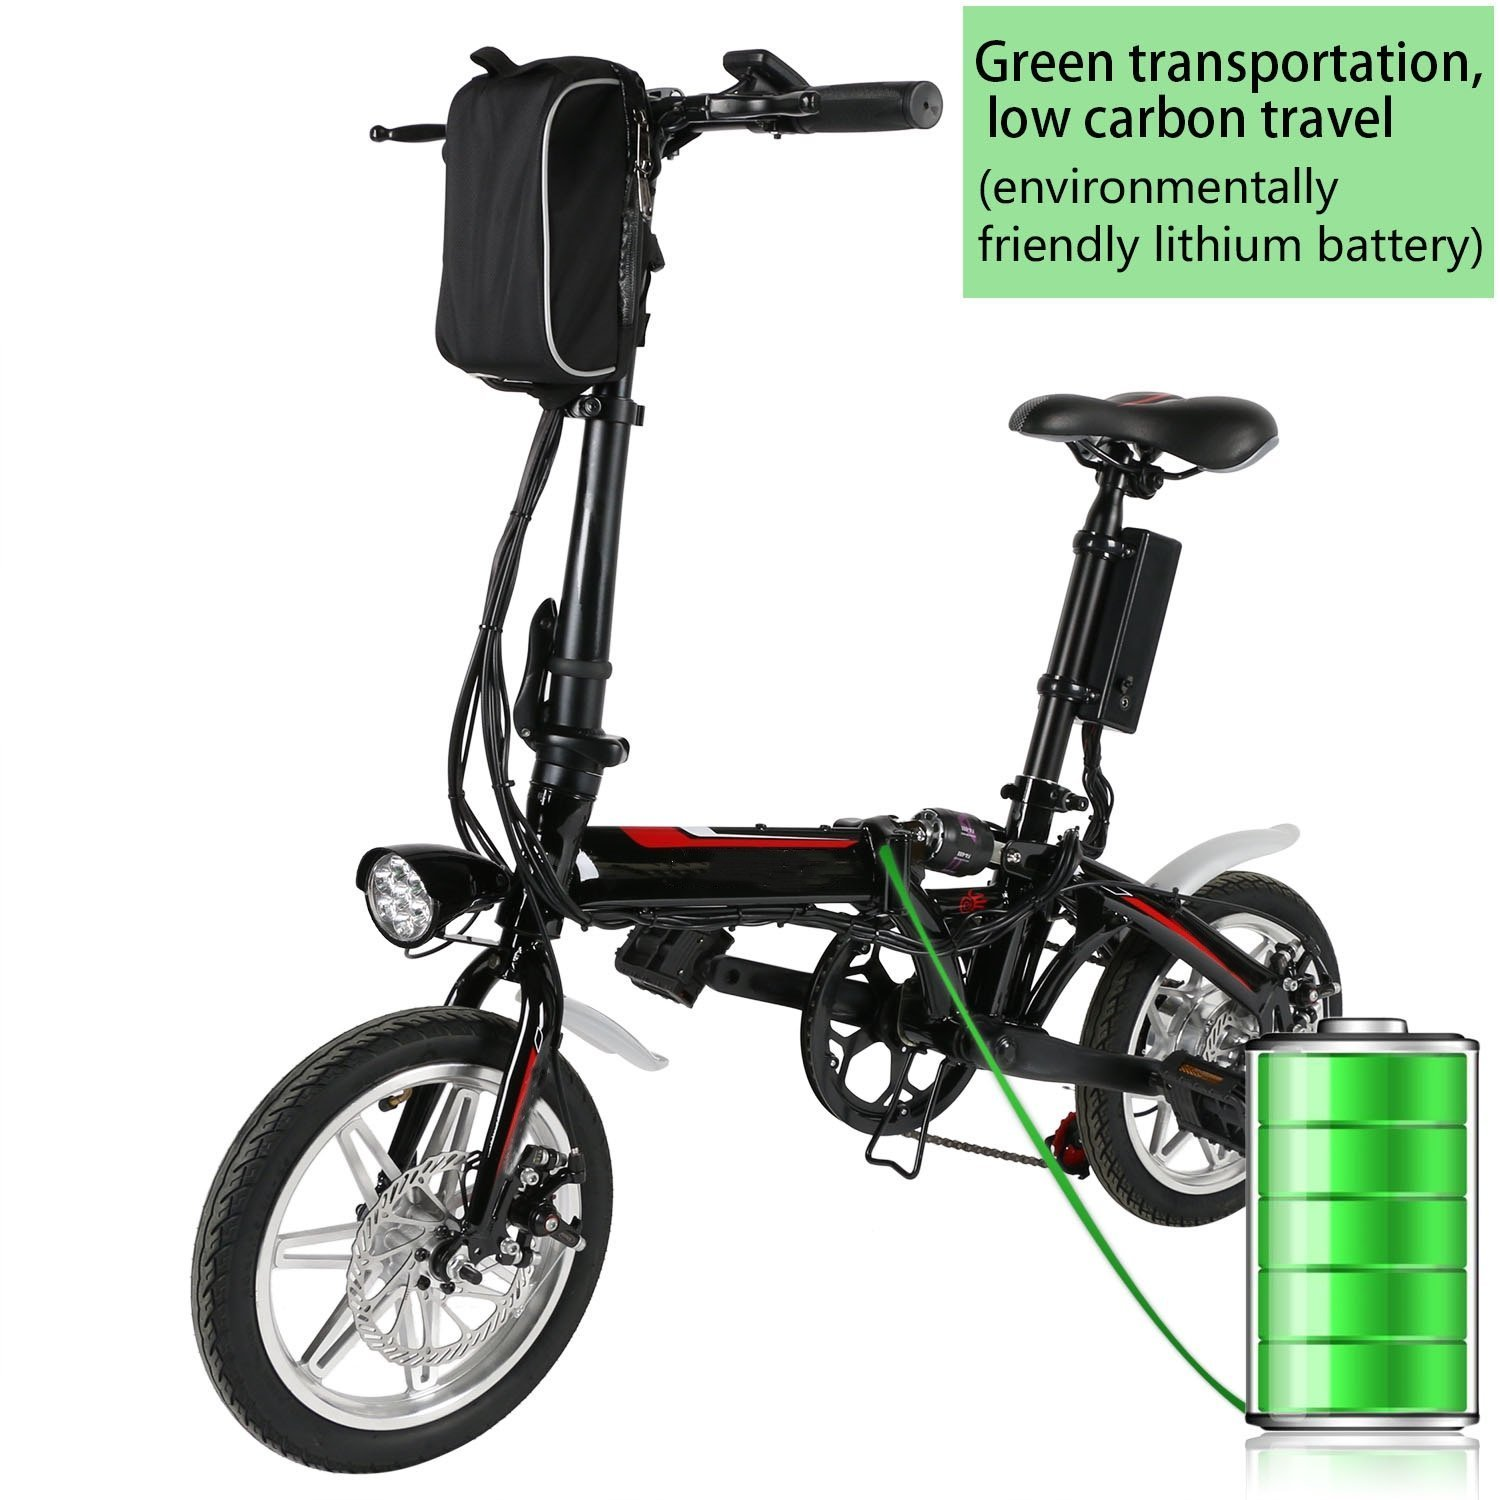 begorey 14 pulgadas Folding Bike Mountain Bike Bicicleta Anti-Shock Unisex con ruedas Pedelec - Batería de ion de litio: Amazon.es: Deportes y aire libre